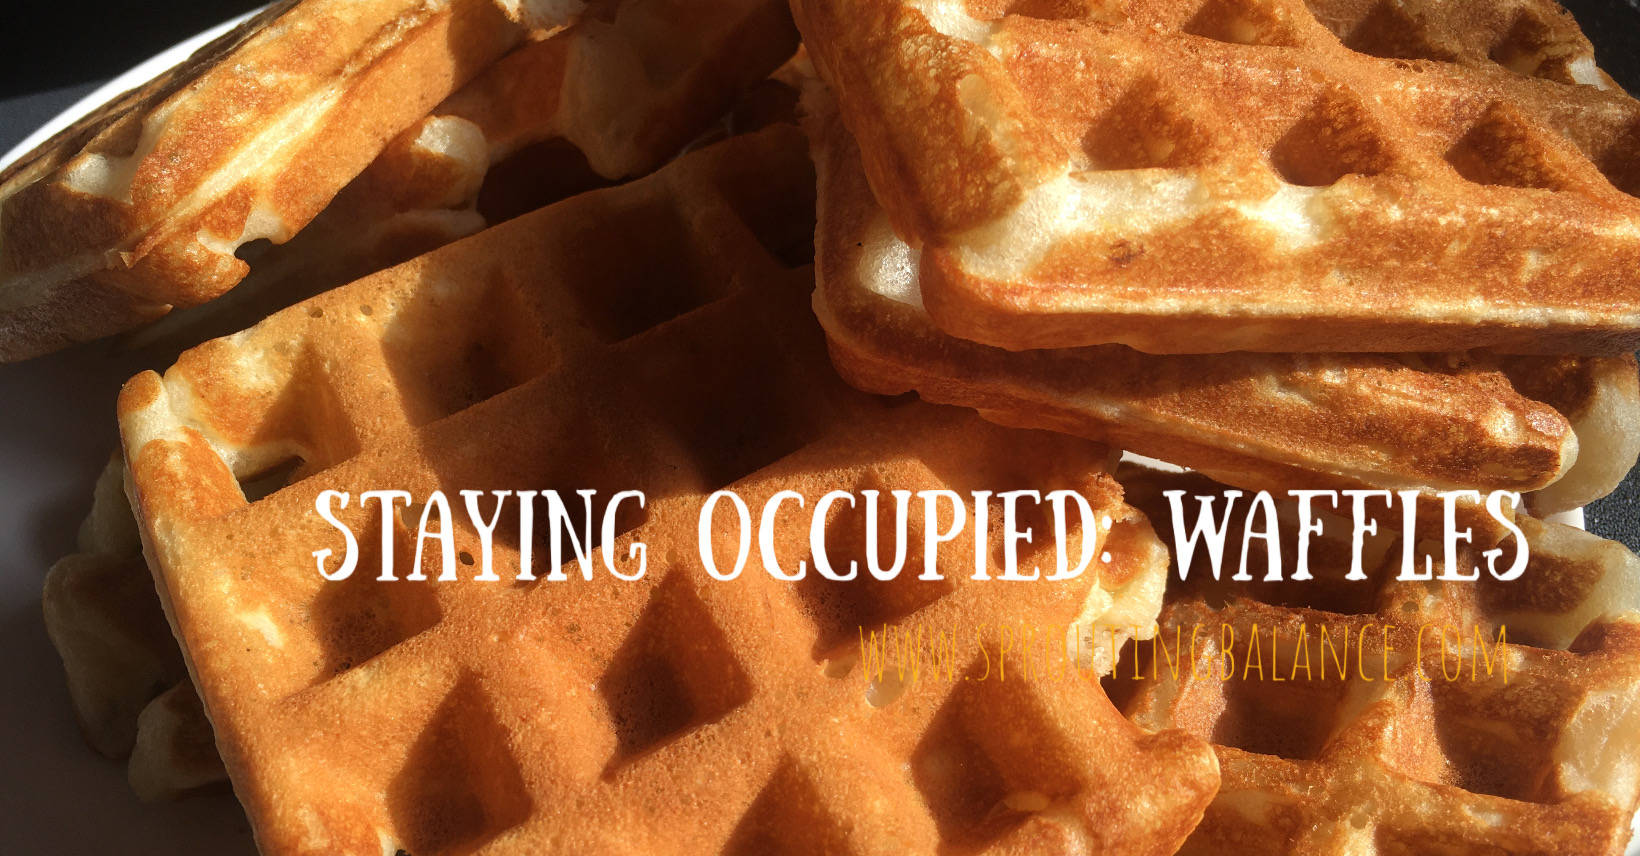 Staying Occupied: Waffles | www.sproutingbalance.com | #stayhome #socialdistancing #bepositive